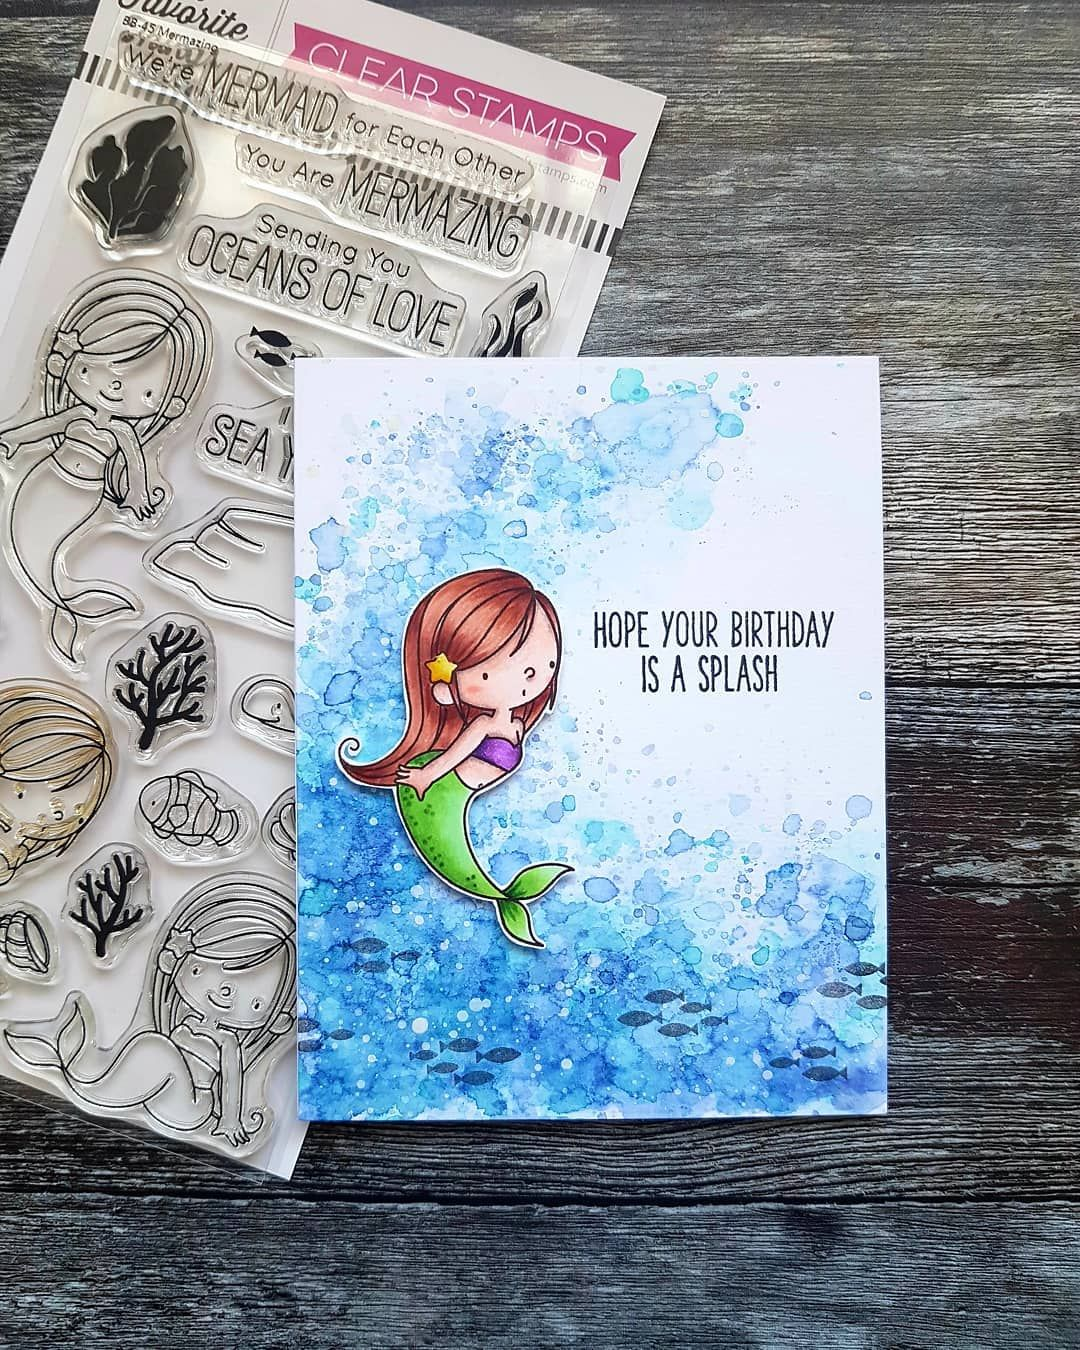 Fish Underwater Sea life See Ya Soon Mermaid Handmade Greeting Card Ocean Unique Personalized Gift for Any Occasion Seahorse Beachy